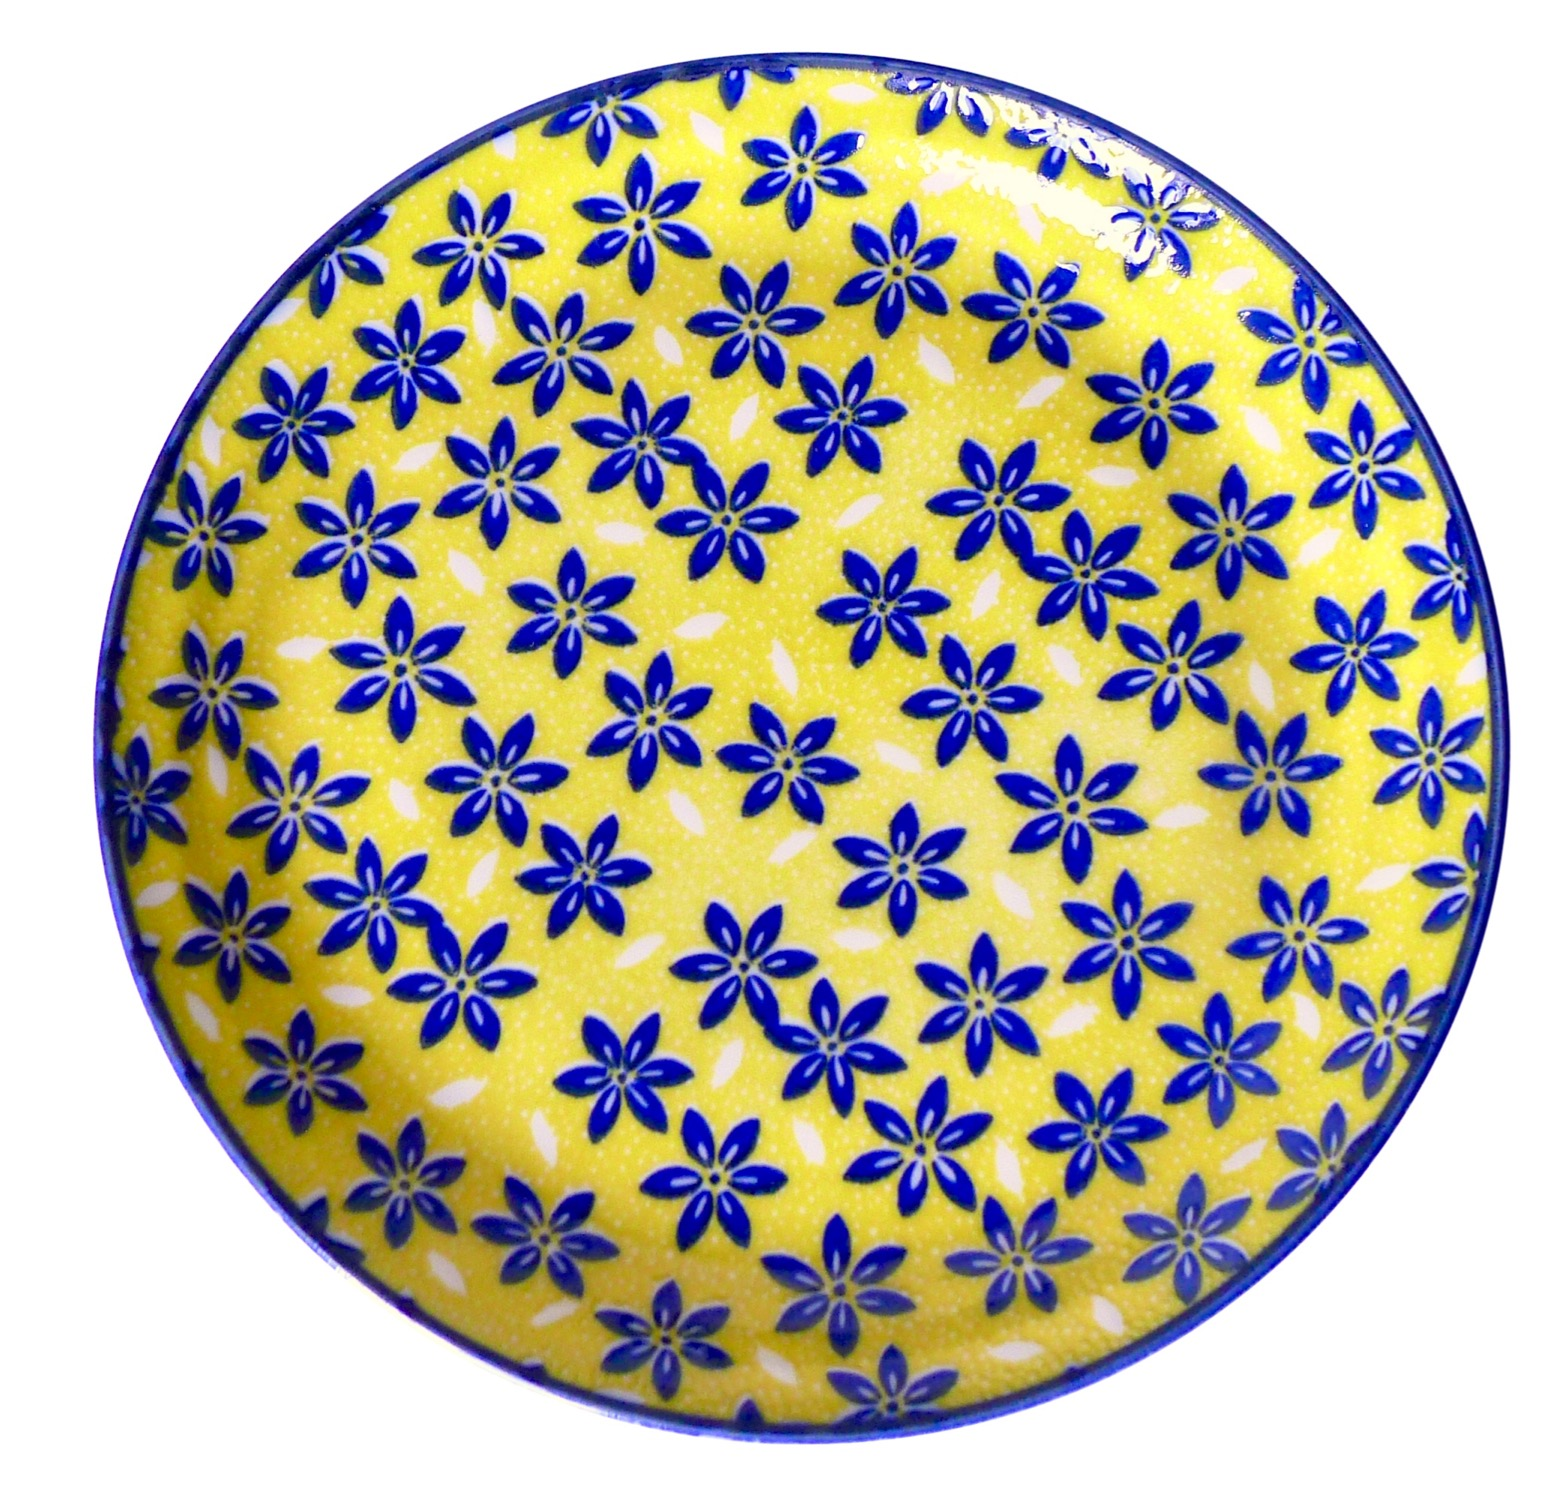 Image of Yellow and Blue Porcelain Plate, Sakura Flowers, 10-Inch, Set Of Four